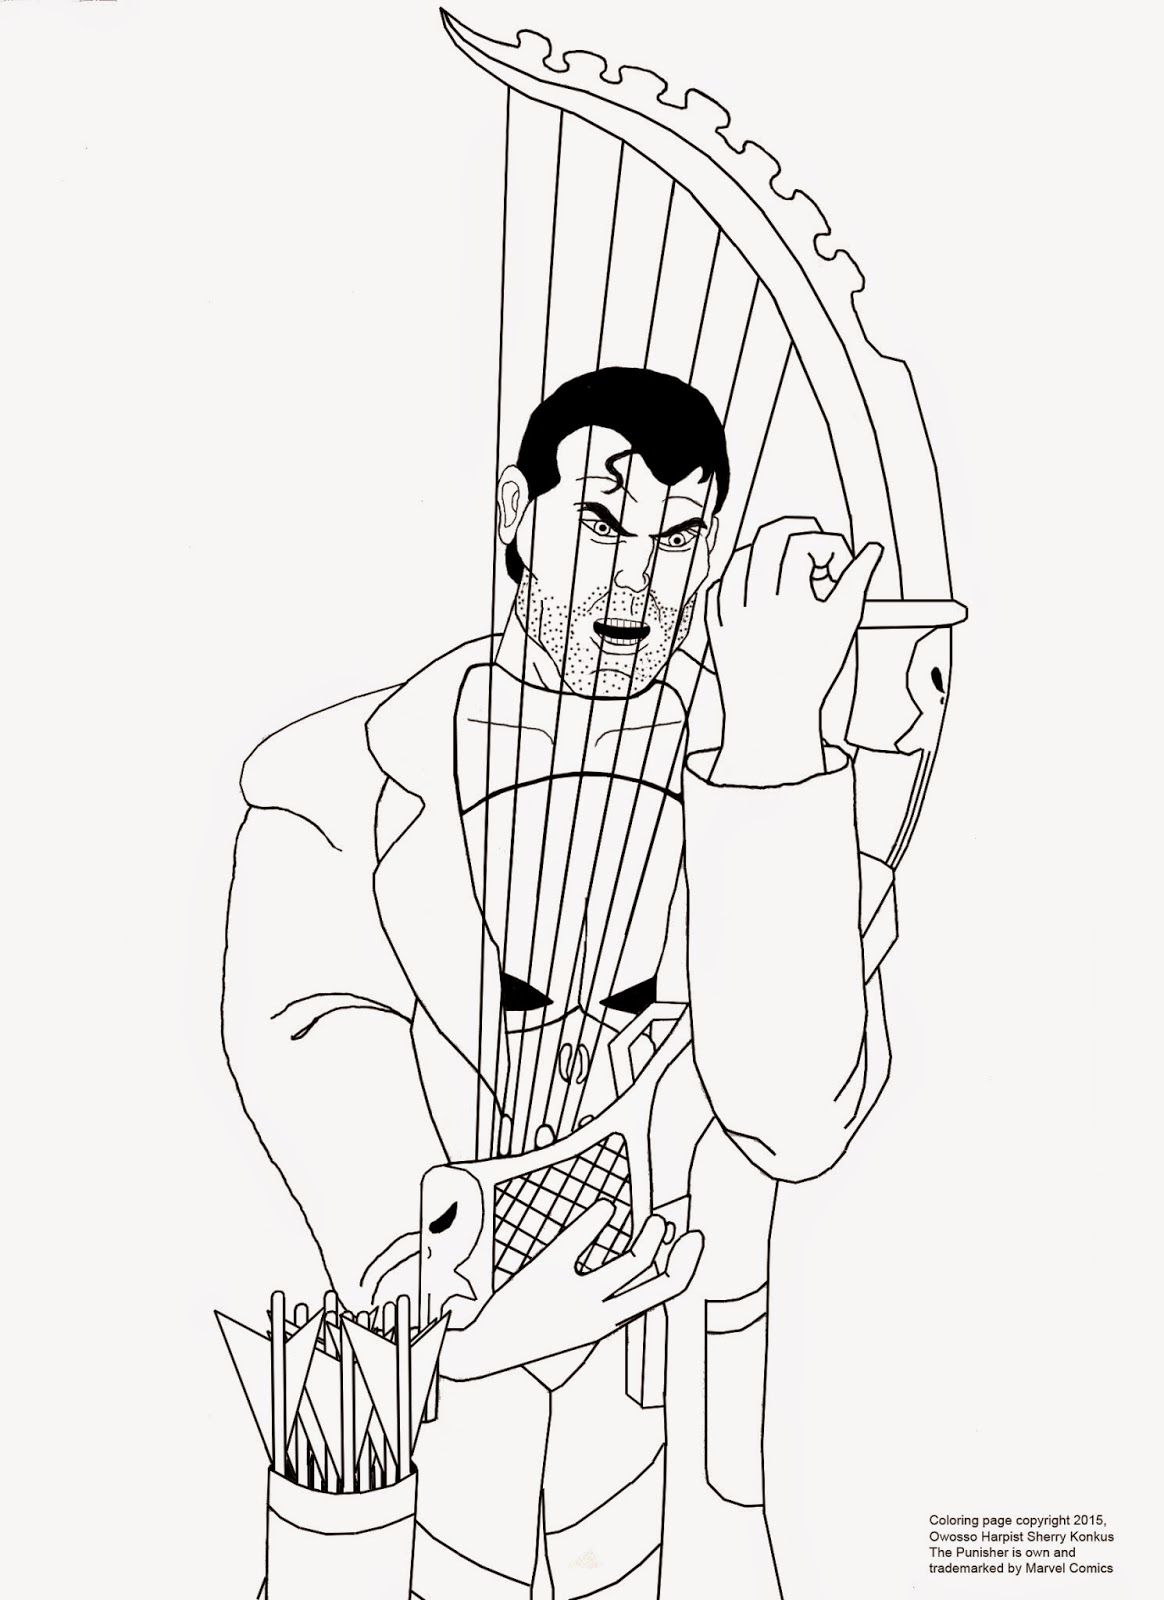 Heres A Free Coloring Page I Made For You Who Are Either Kids Or At Heart Enjoys And Big Fans Of The Punisher